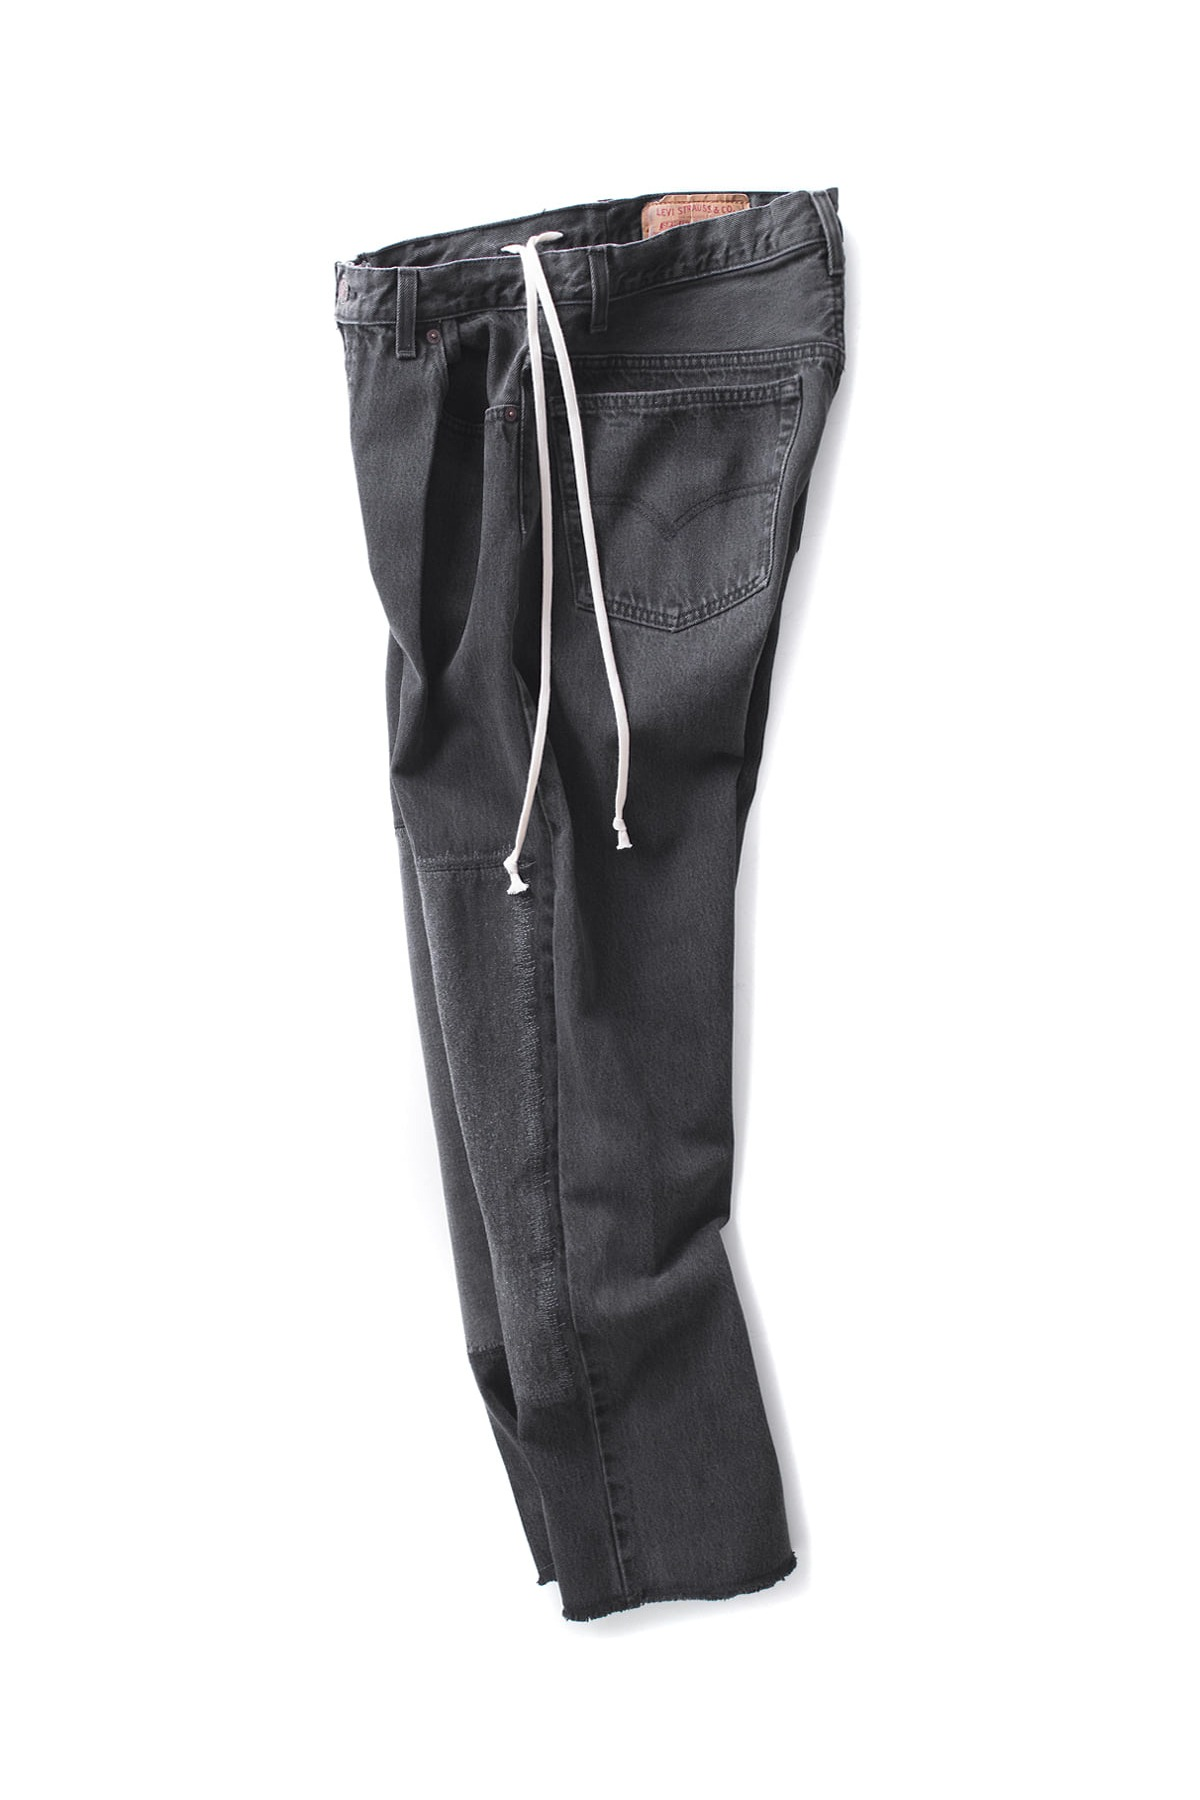 HEXICO : 1 Pleat Denim (Black)